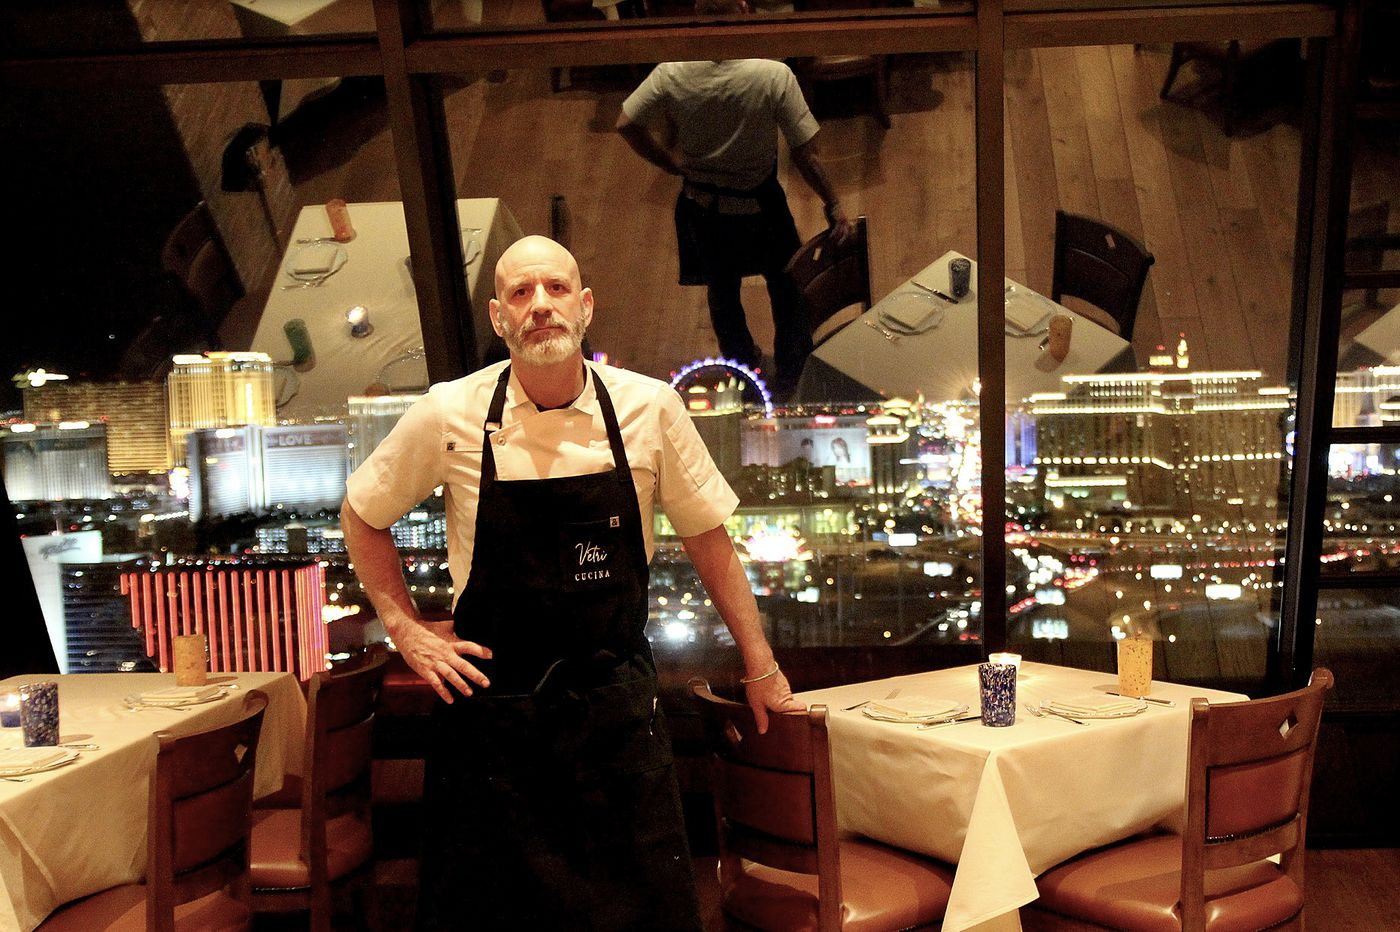 Vetri, Las Vegas: A Philly chef's next gambit